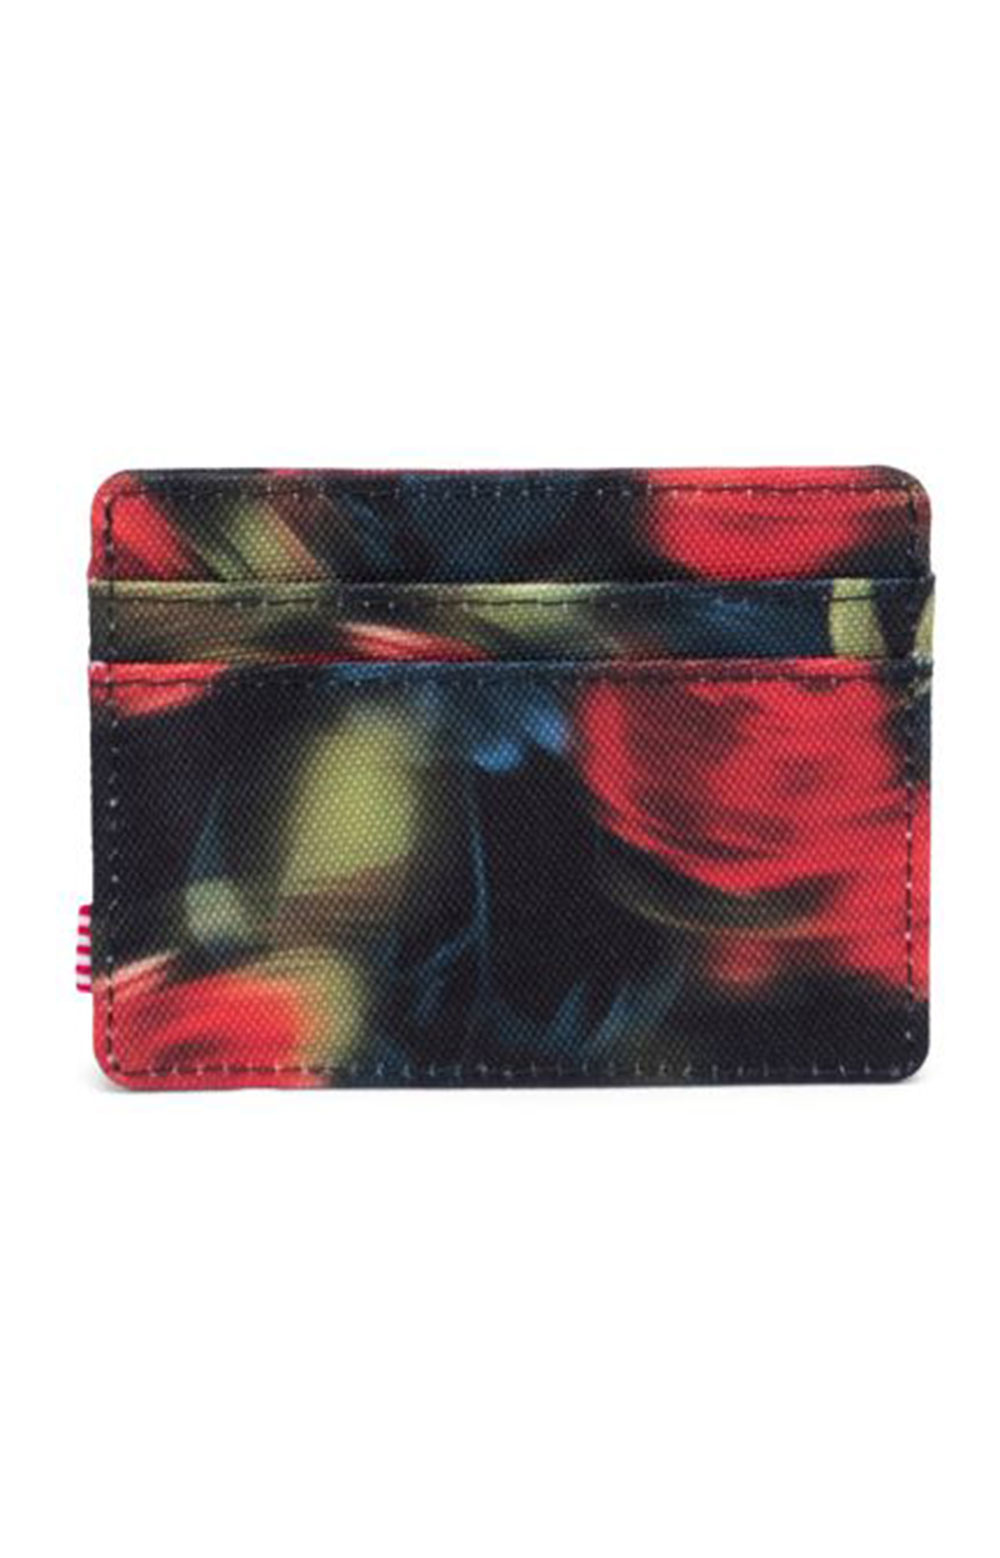 Charlie Wallet - Blurry Roses  3